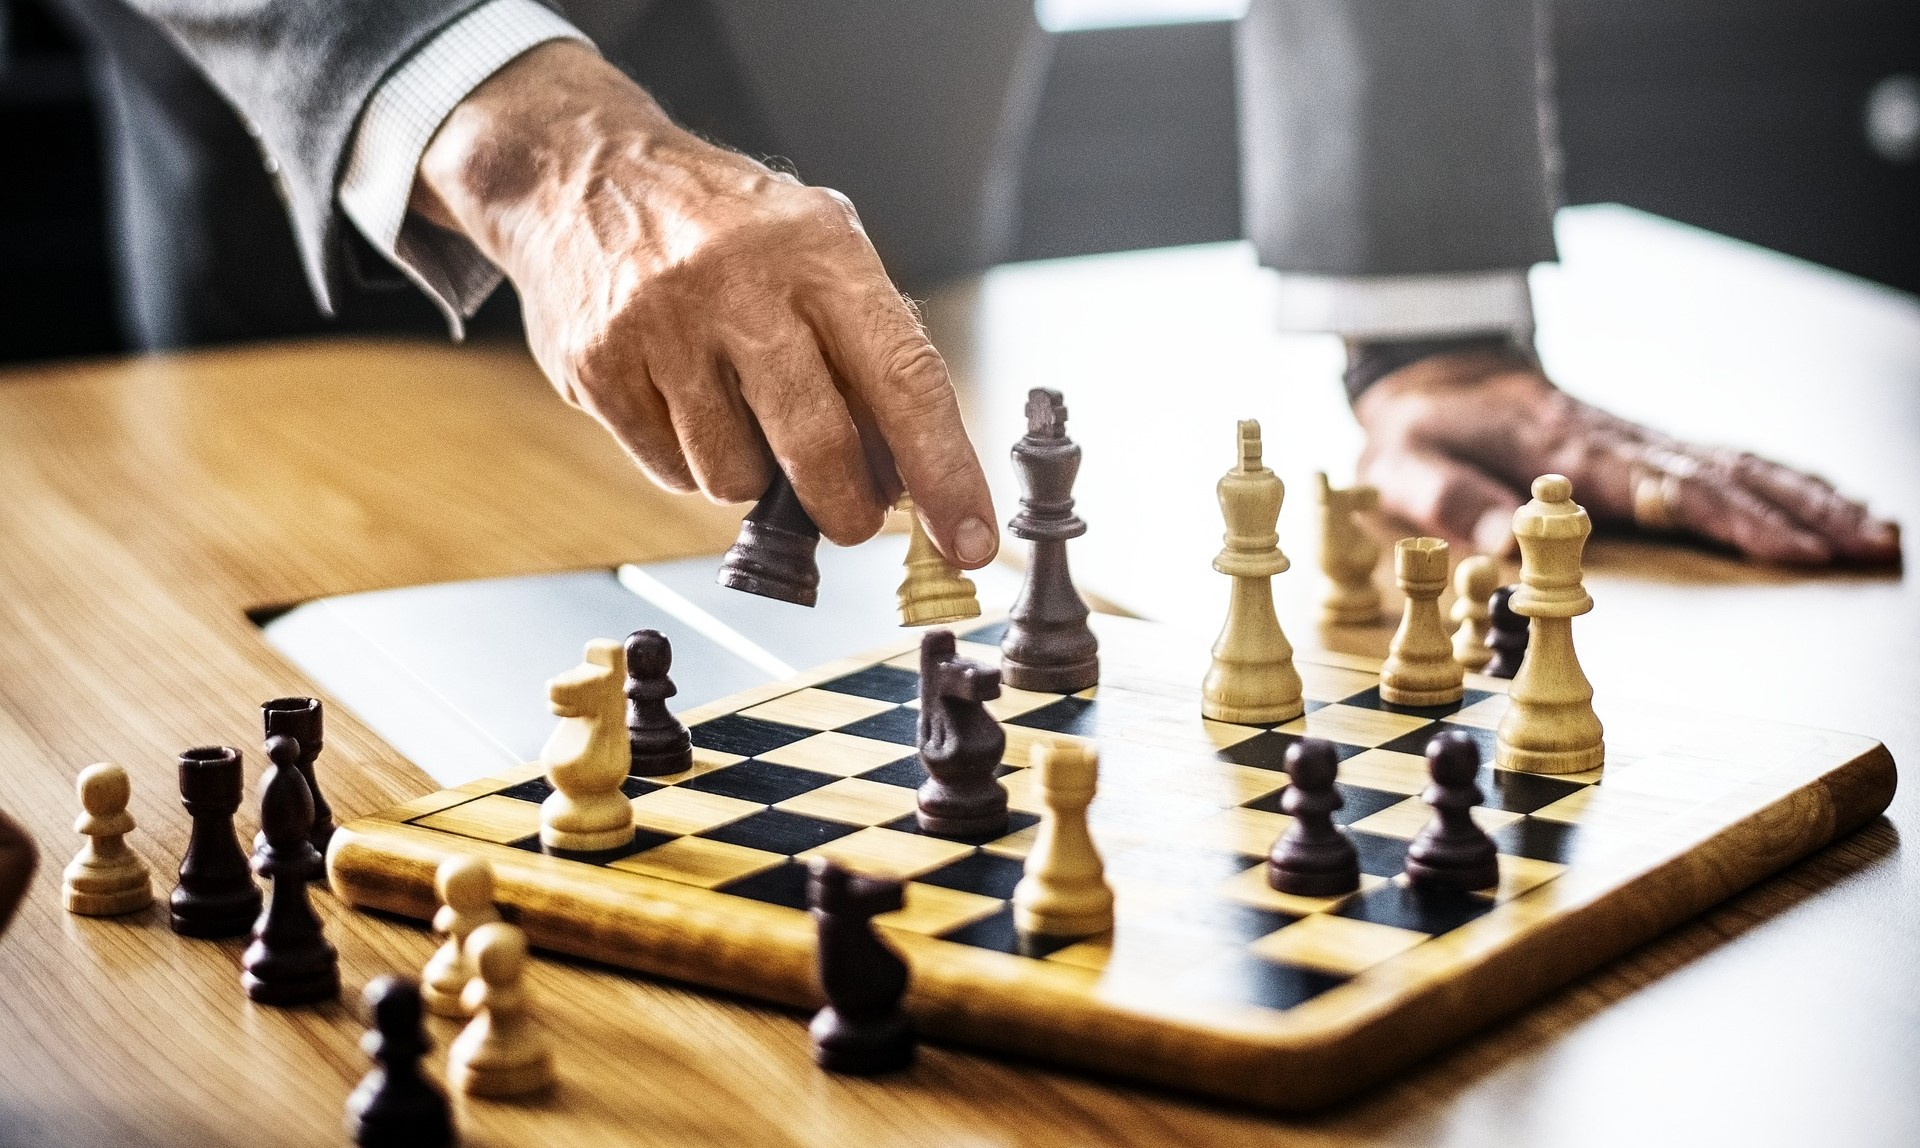 For a leader, chess is better than checkers